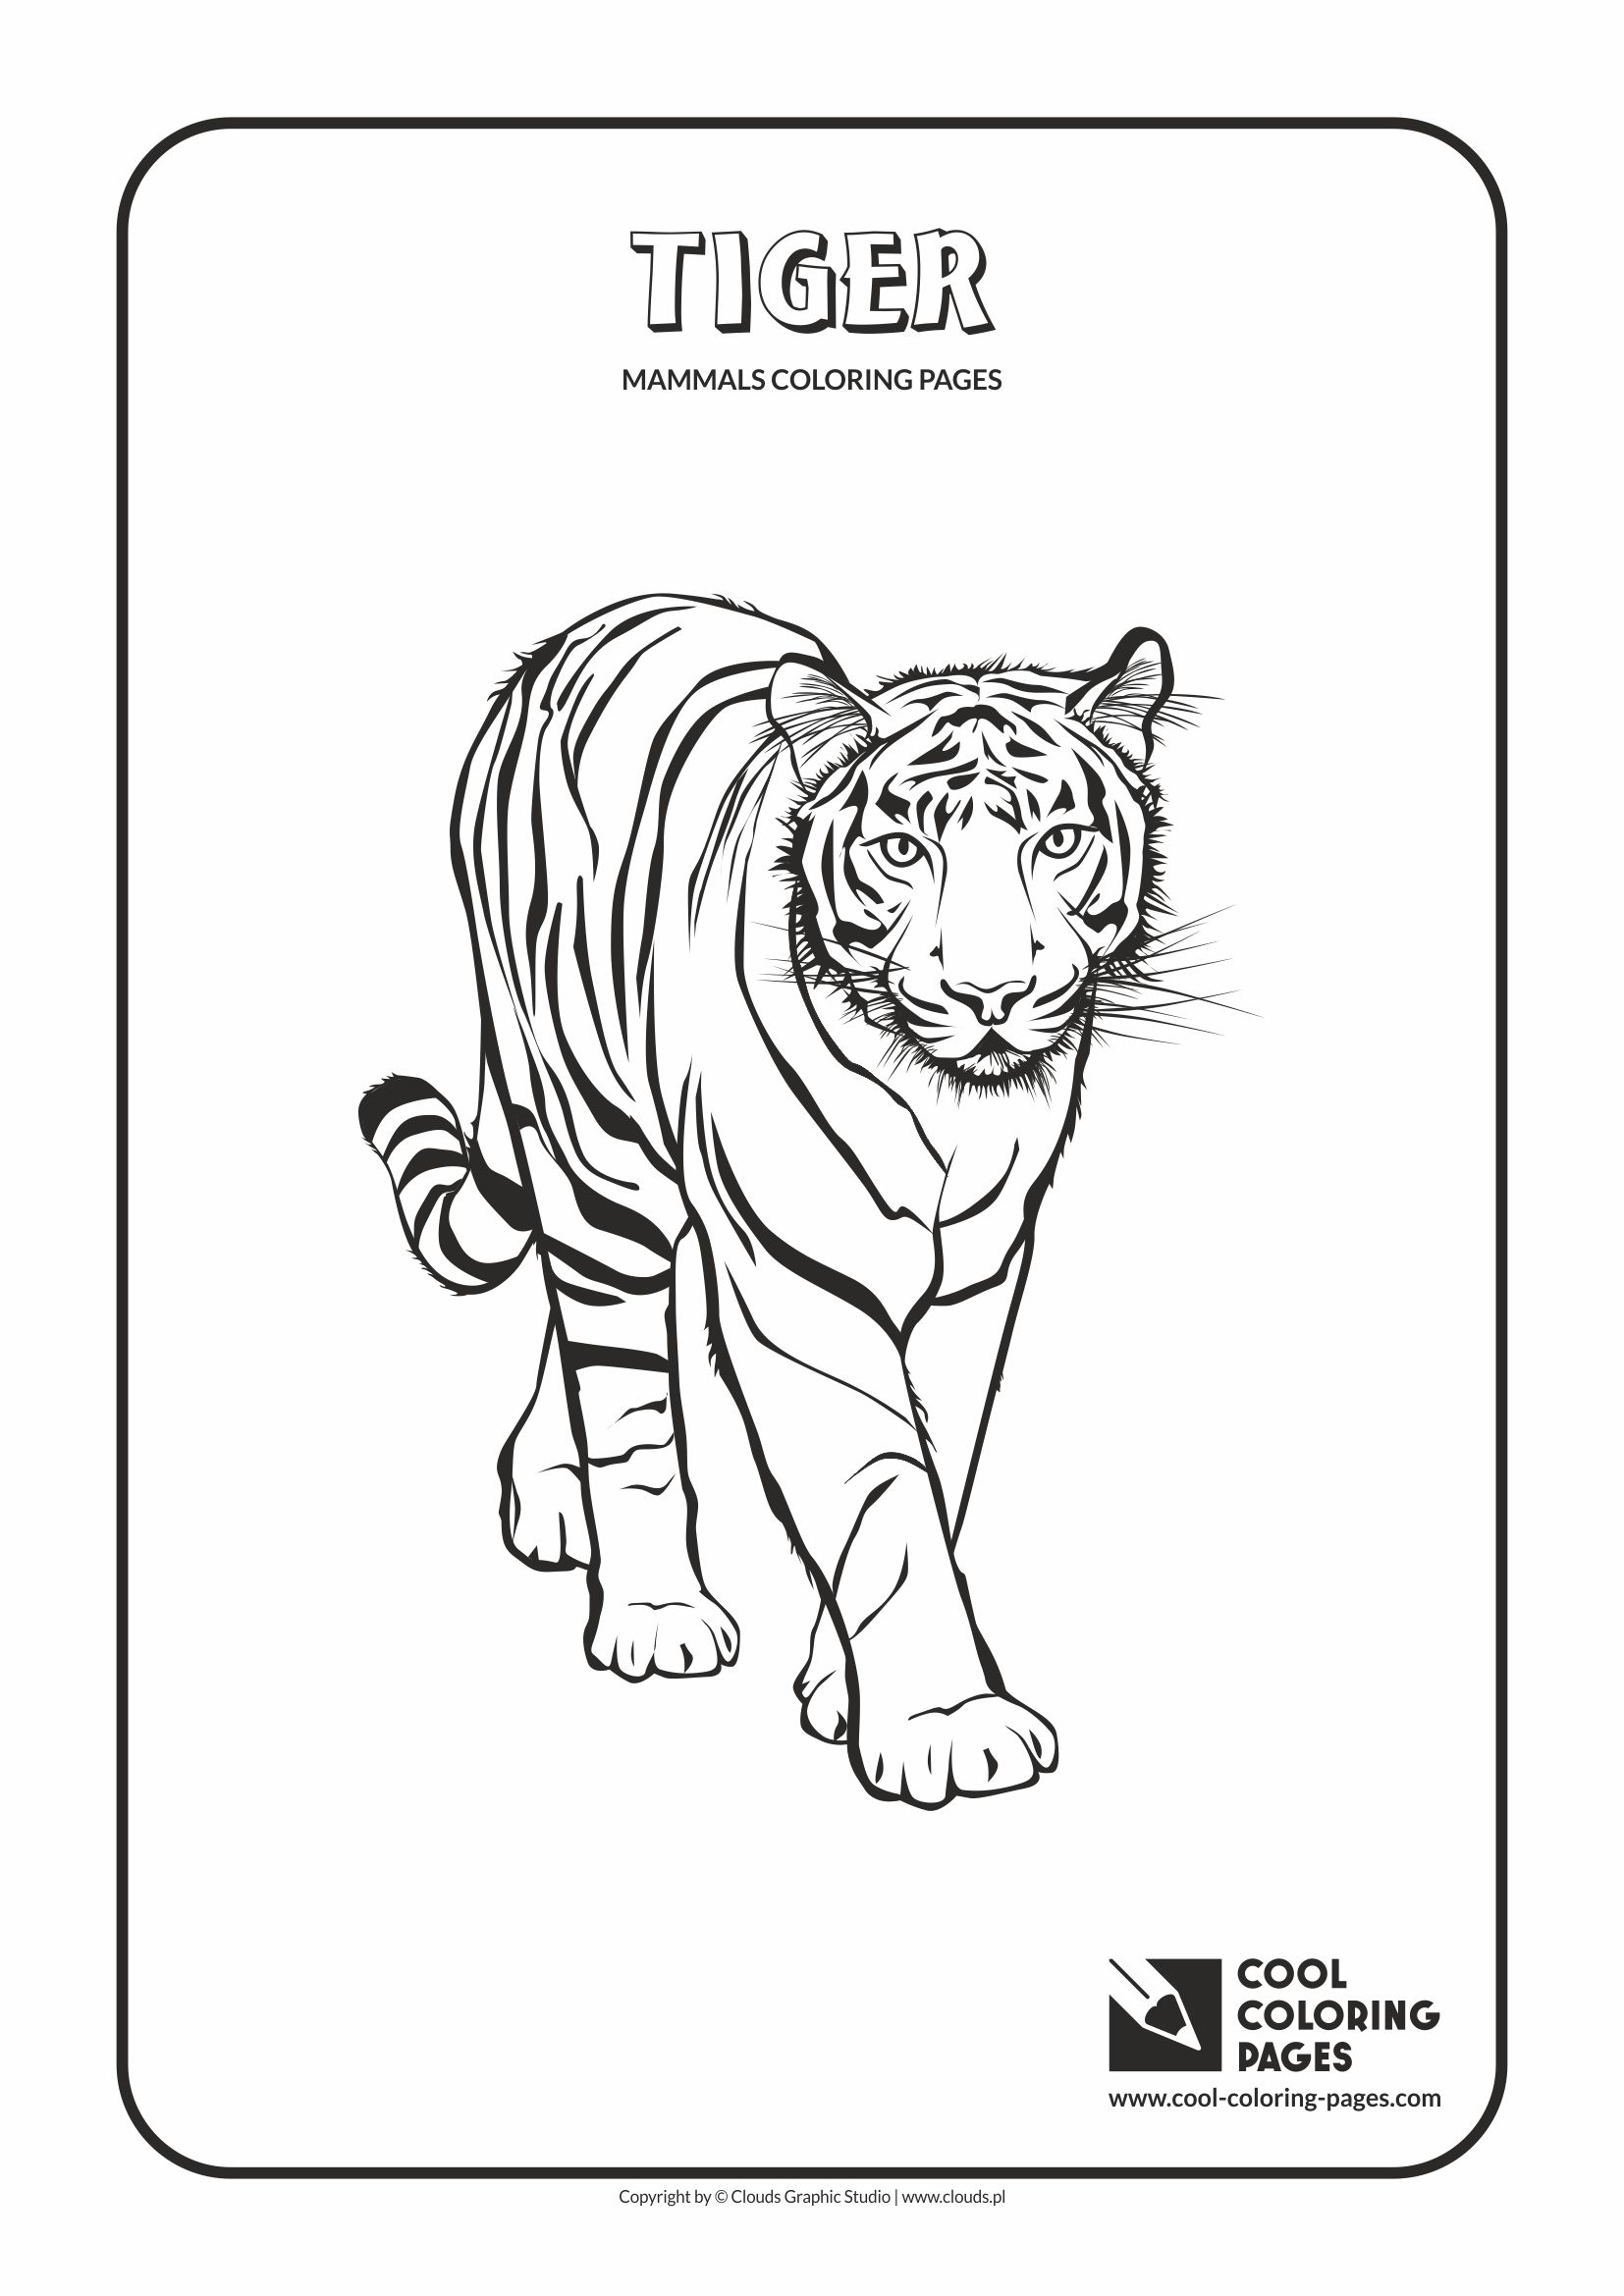 Cool Coloring Pages - Animals / Tiger / Coloring page with tiger